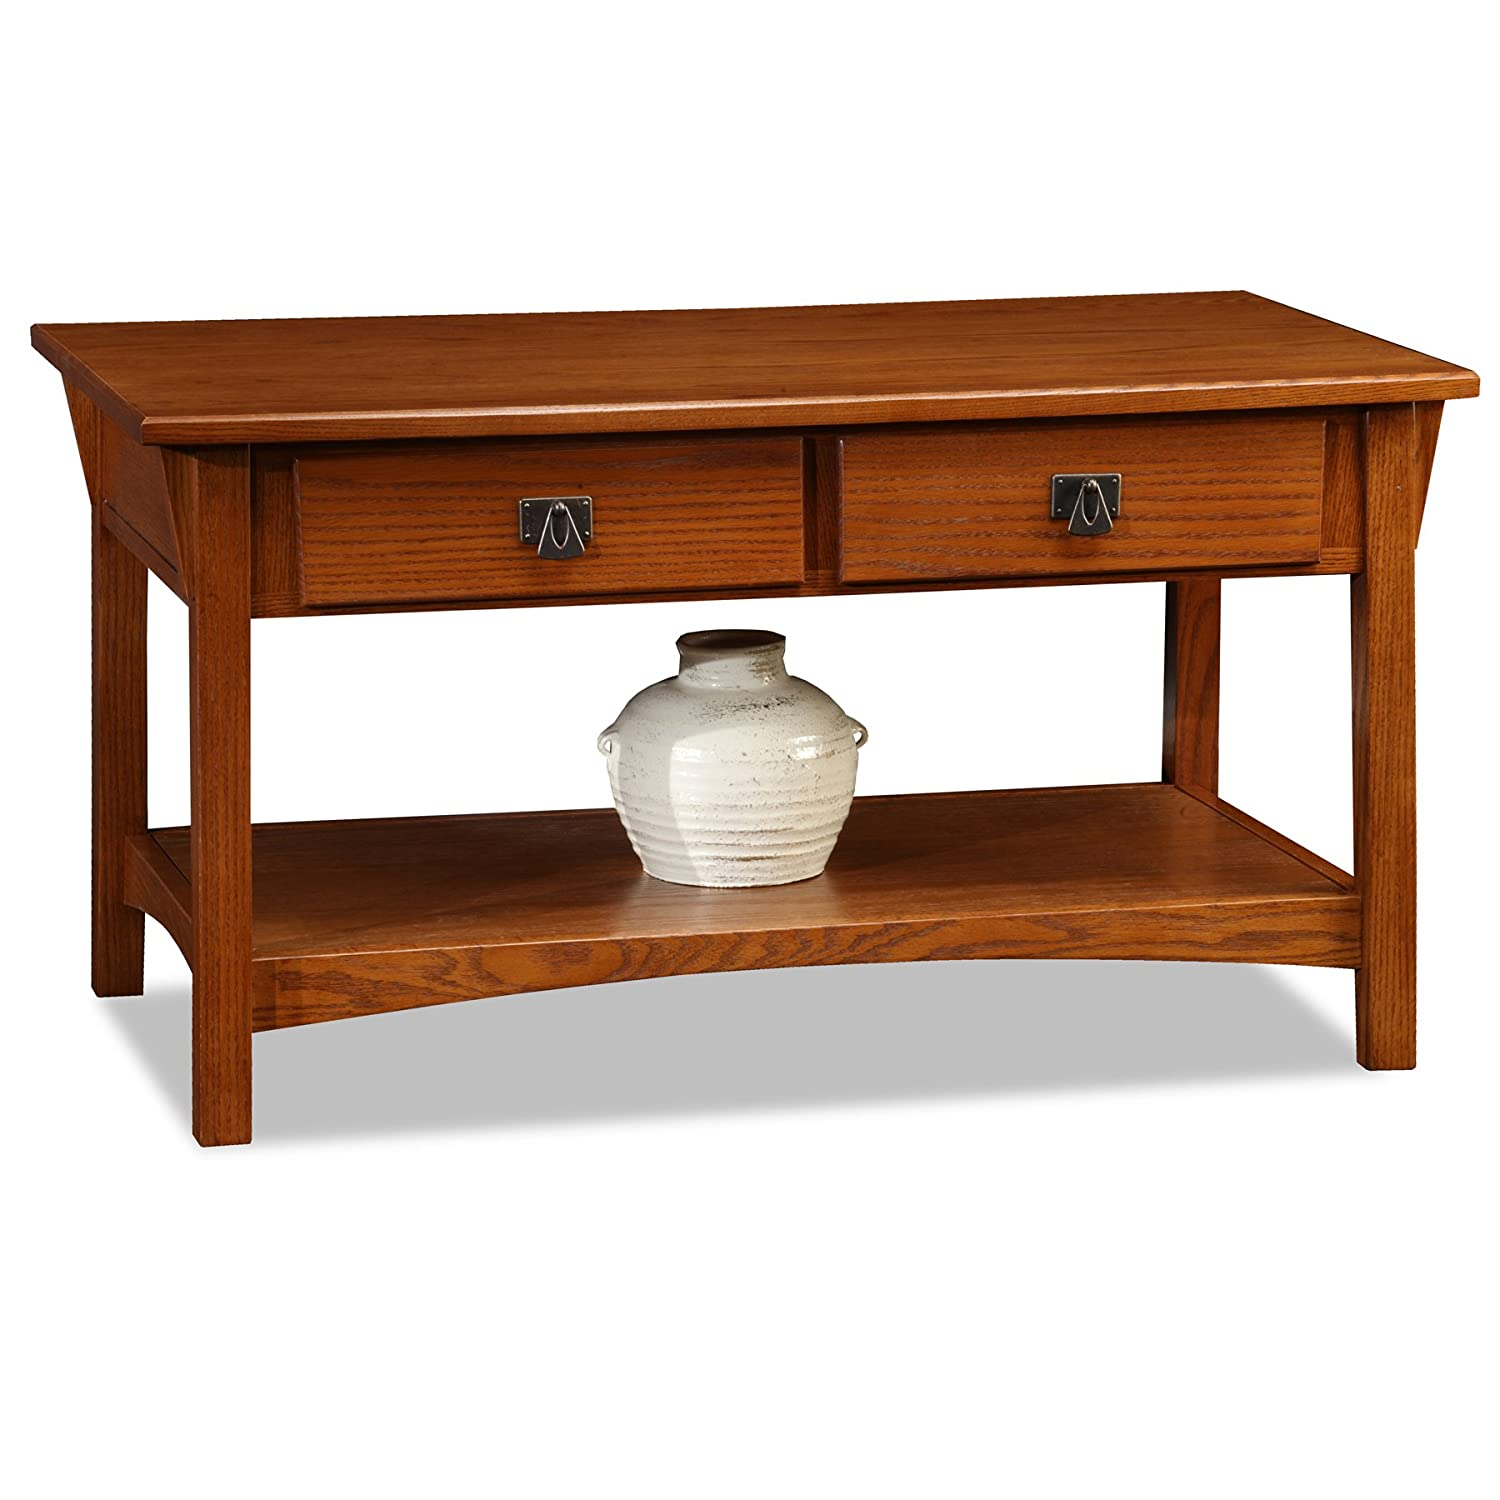 Marvelous Amazon.com: Mission Two Drawer Coffee Table   Russet Finish: Kitchen U0026  Dining Part 13